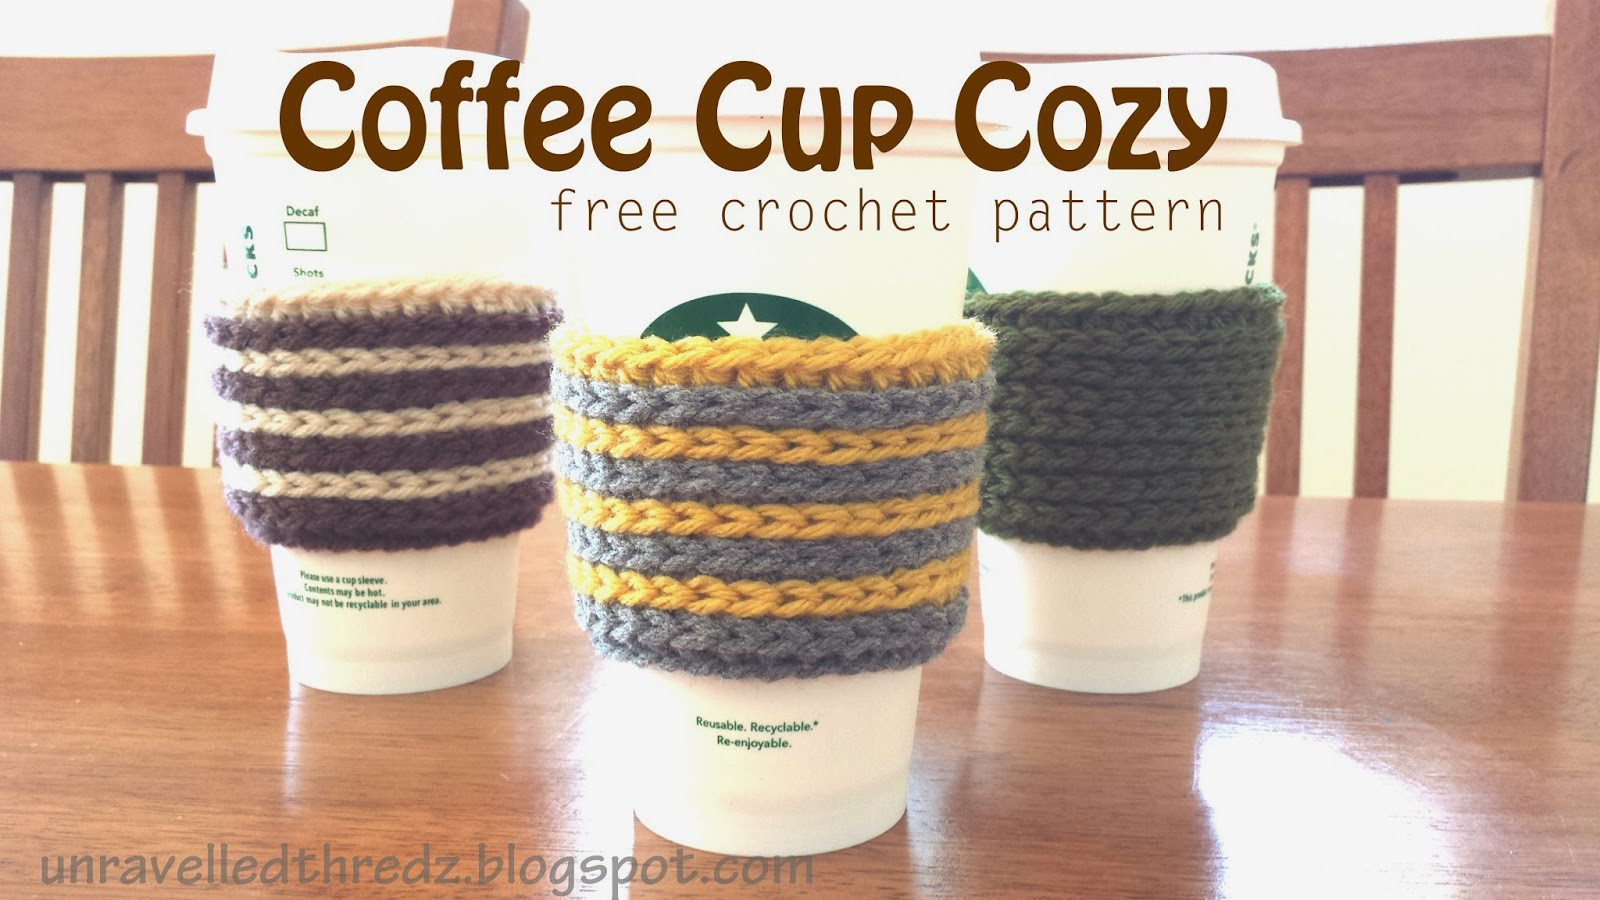 Crochet Coffee Cup Cozy Inspirational Crochet Class Beginning Crochet Sparkleez Crystles Of Crochet Coffee Cup Cozy Awesome Crochet Coffee Cozy Amy Latta Creations